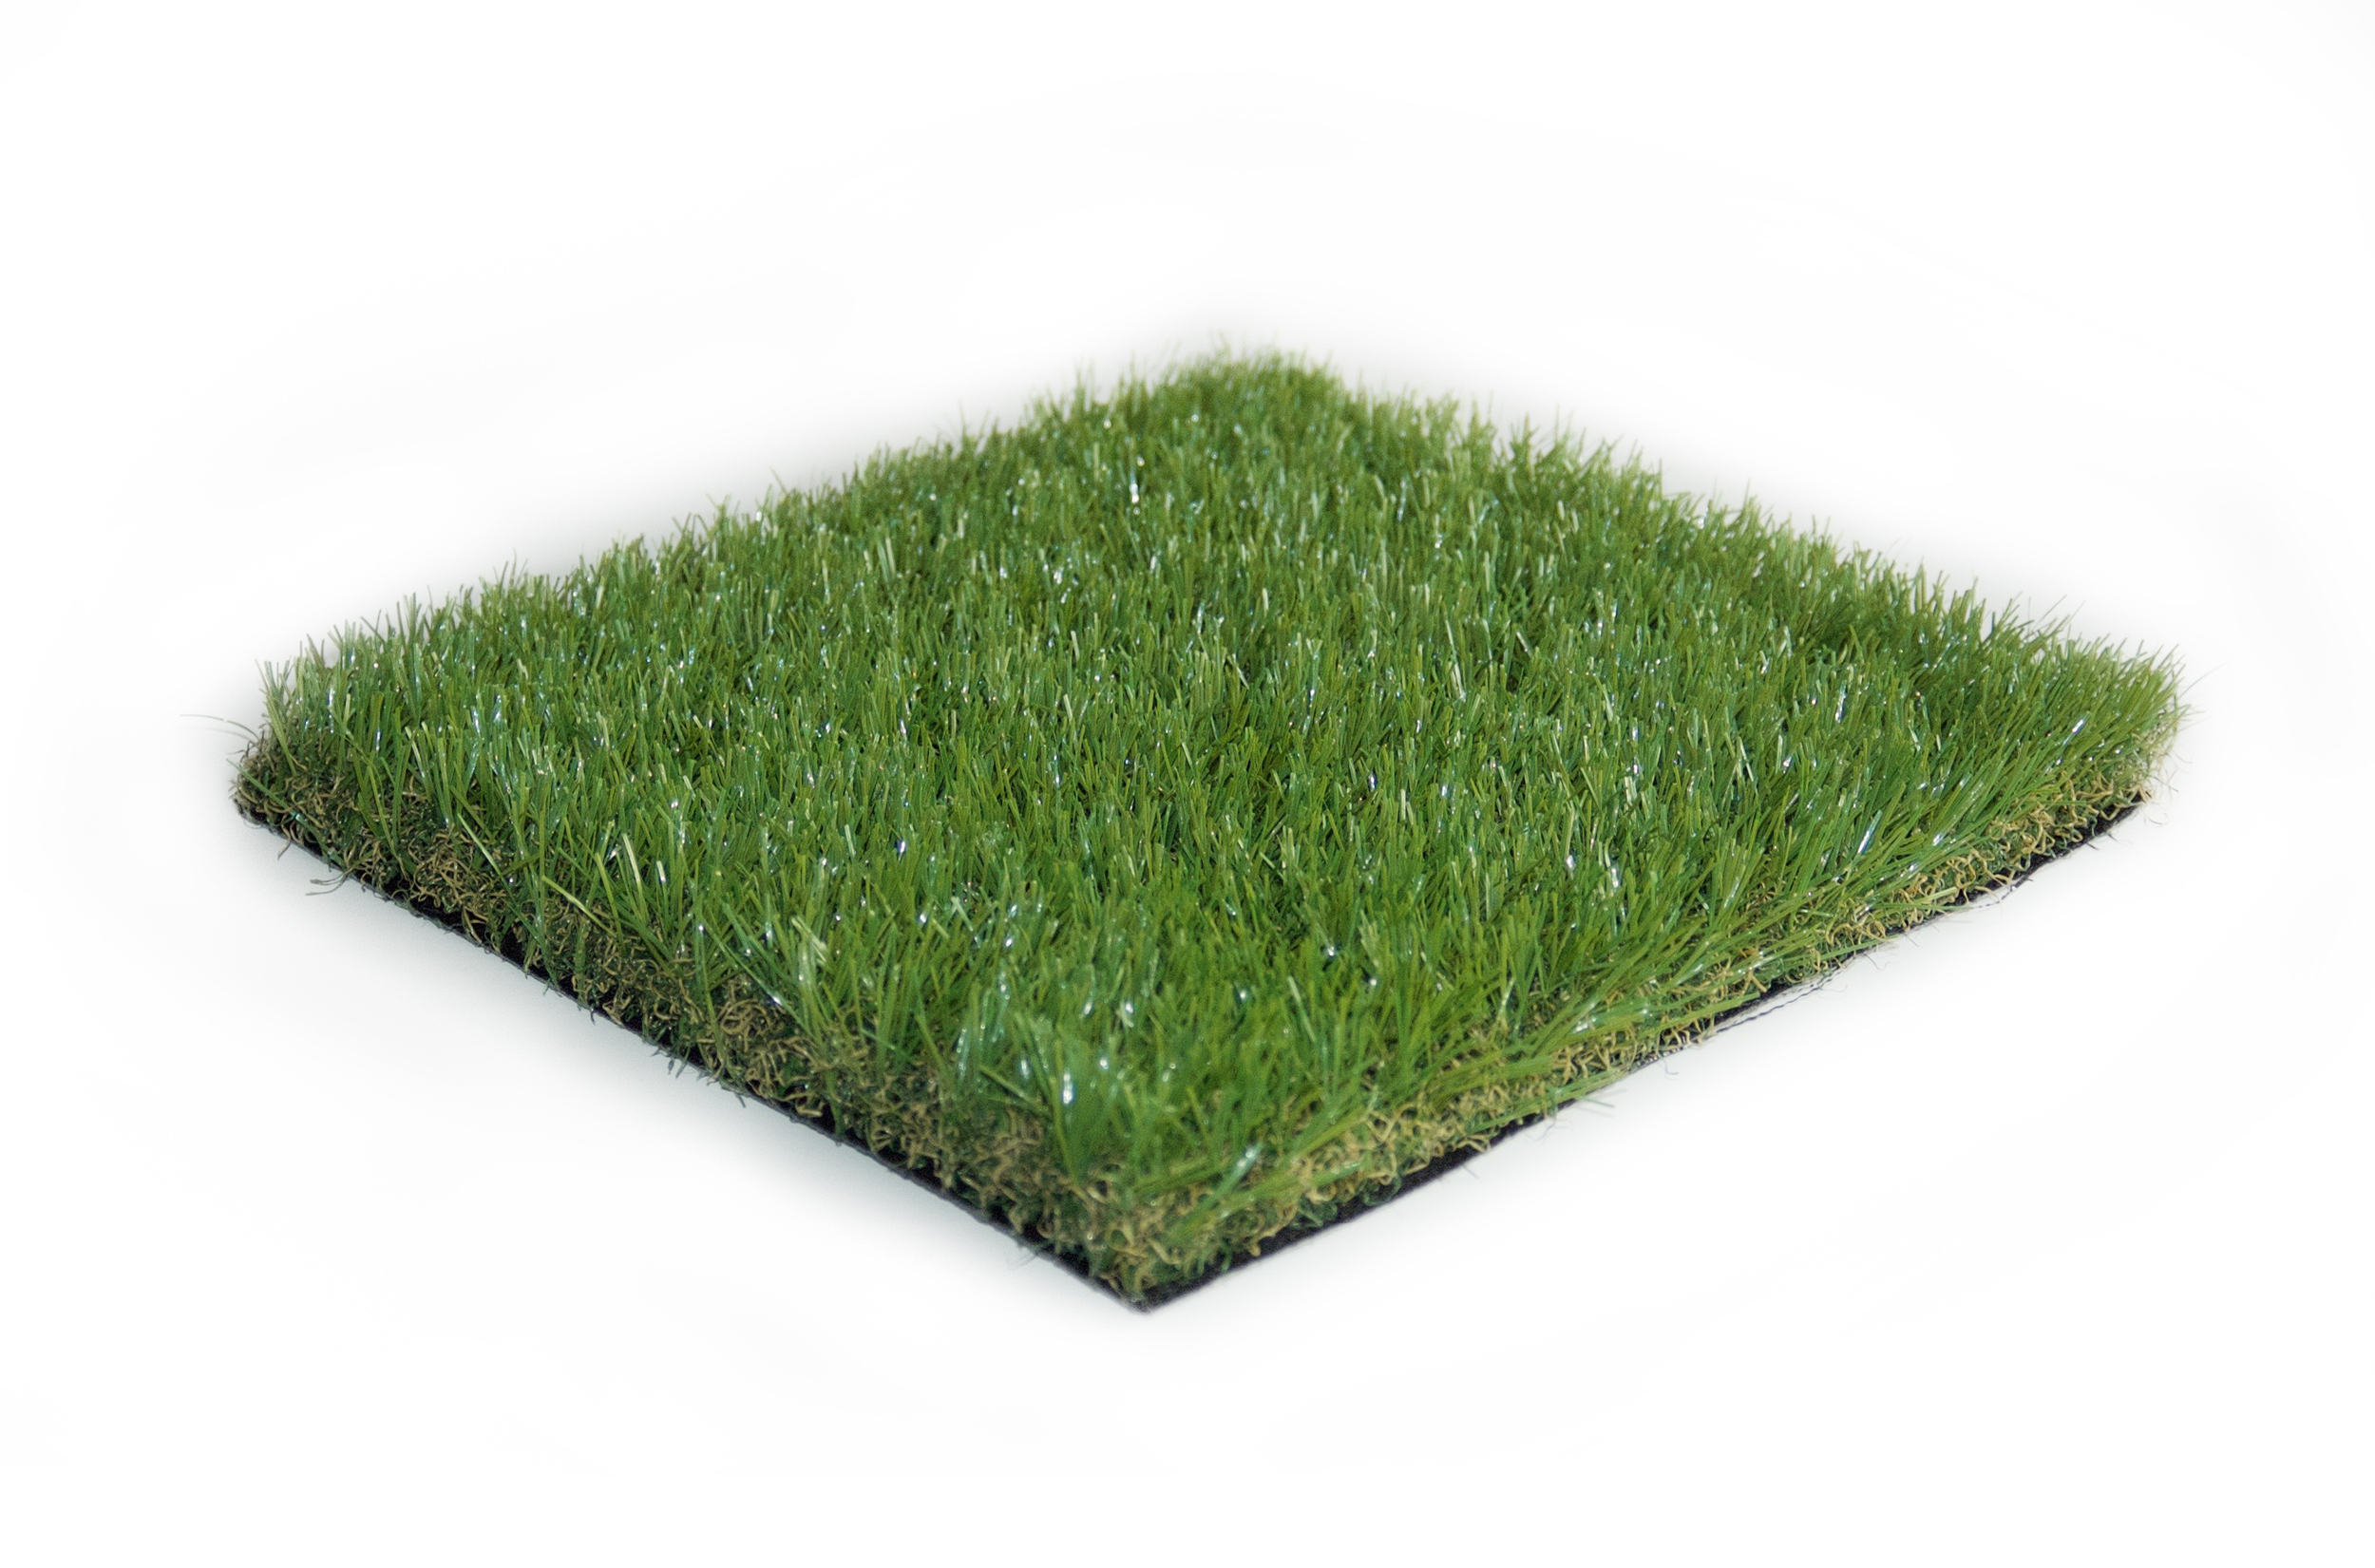 EcoGrass-Square.jpg